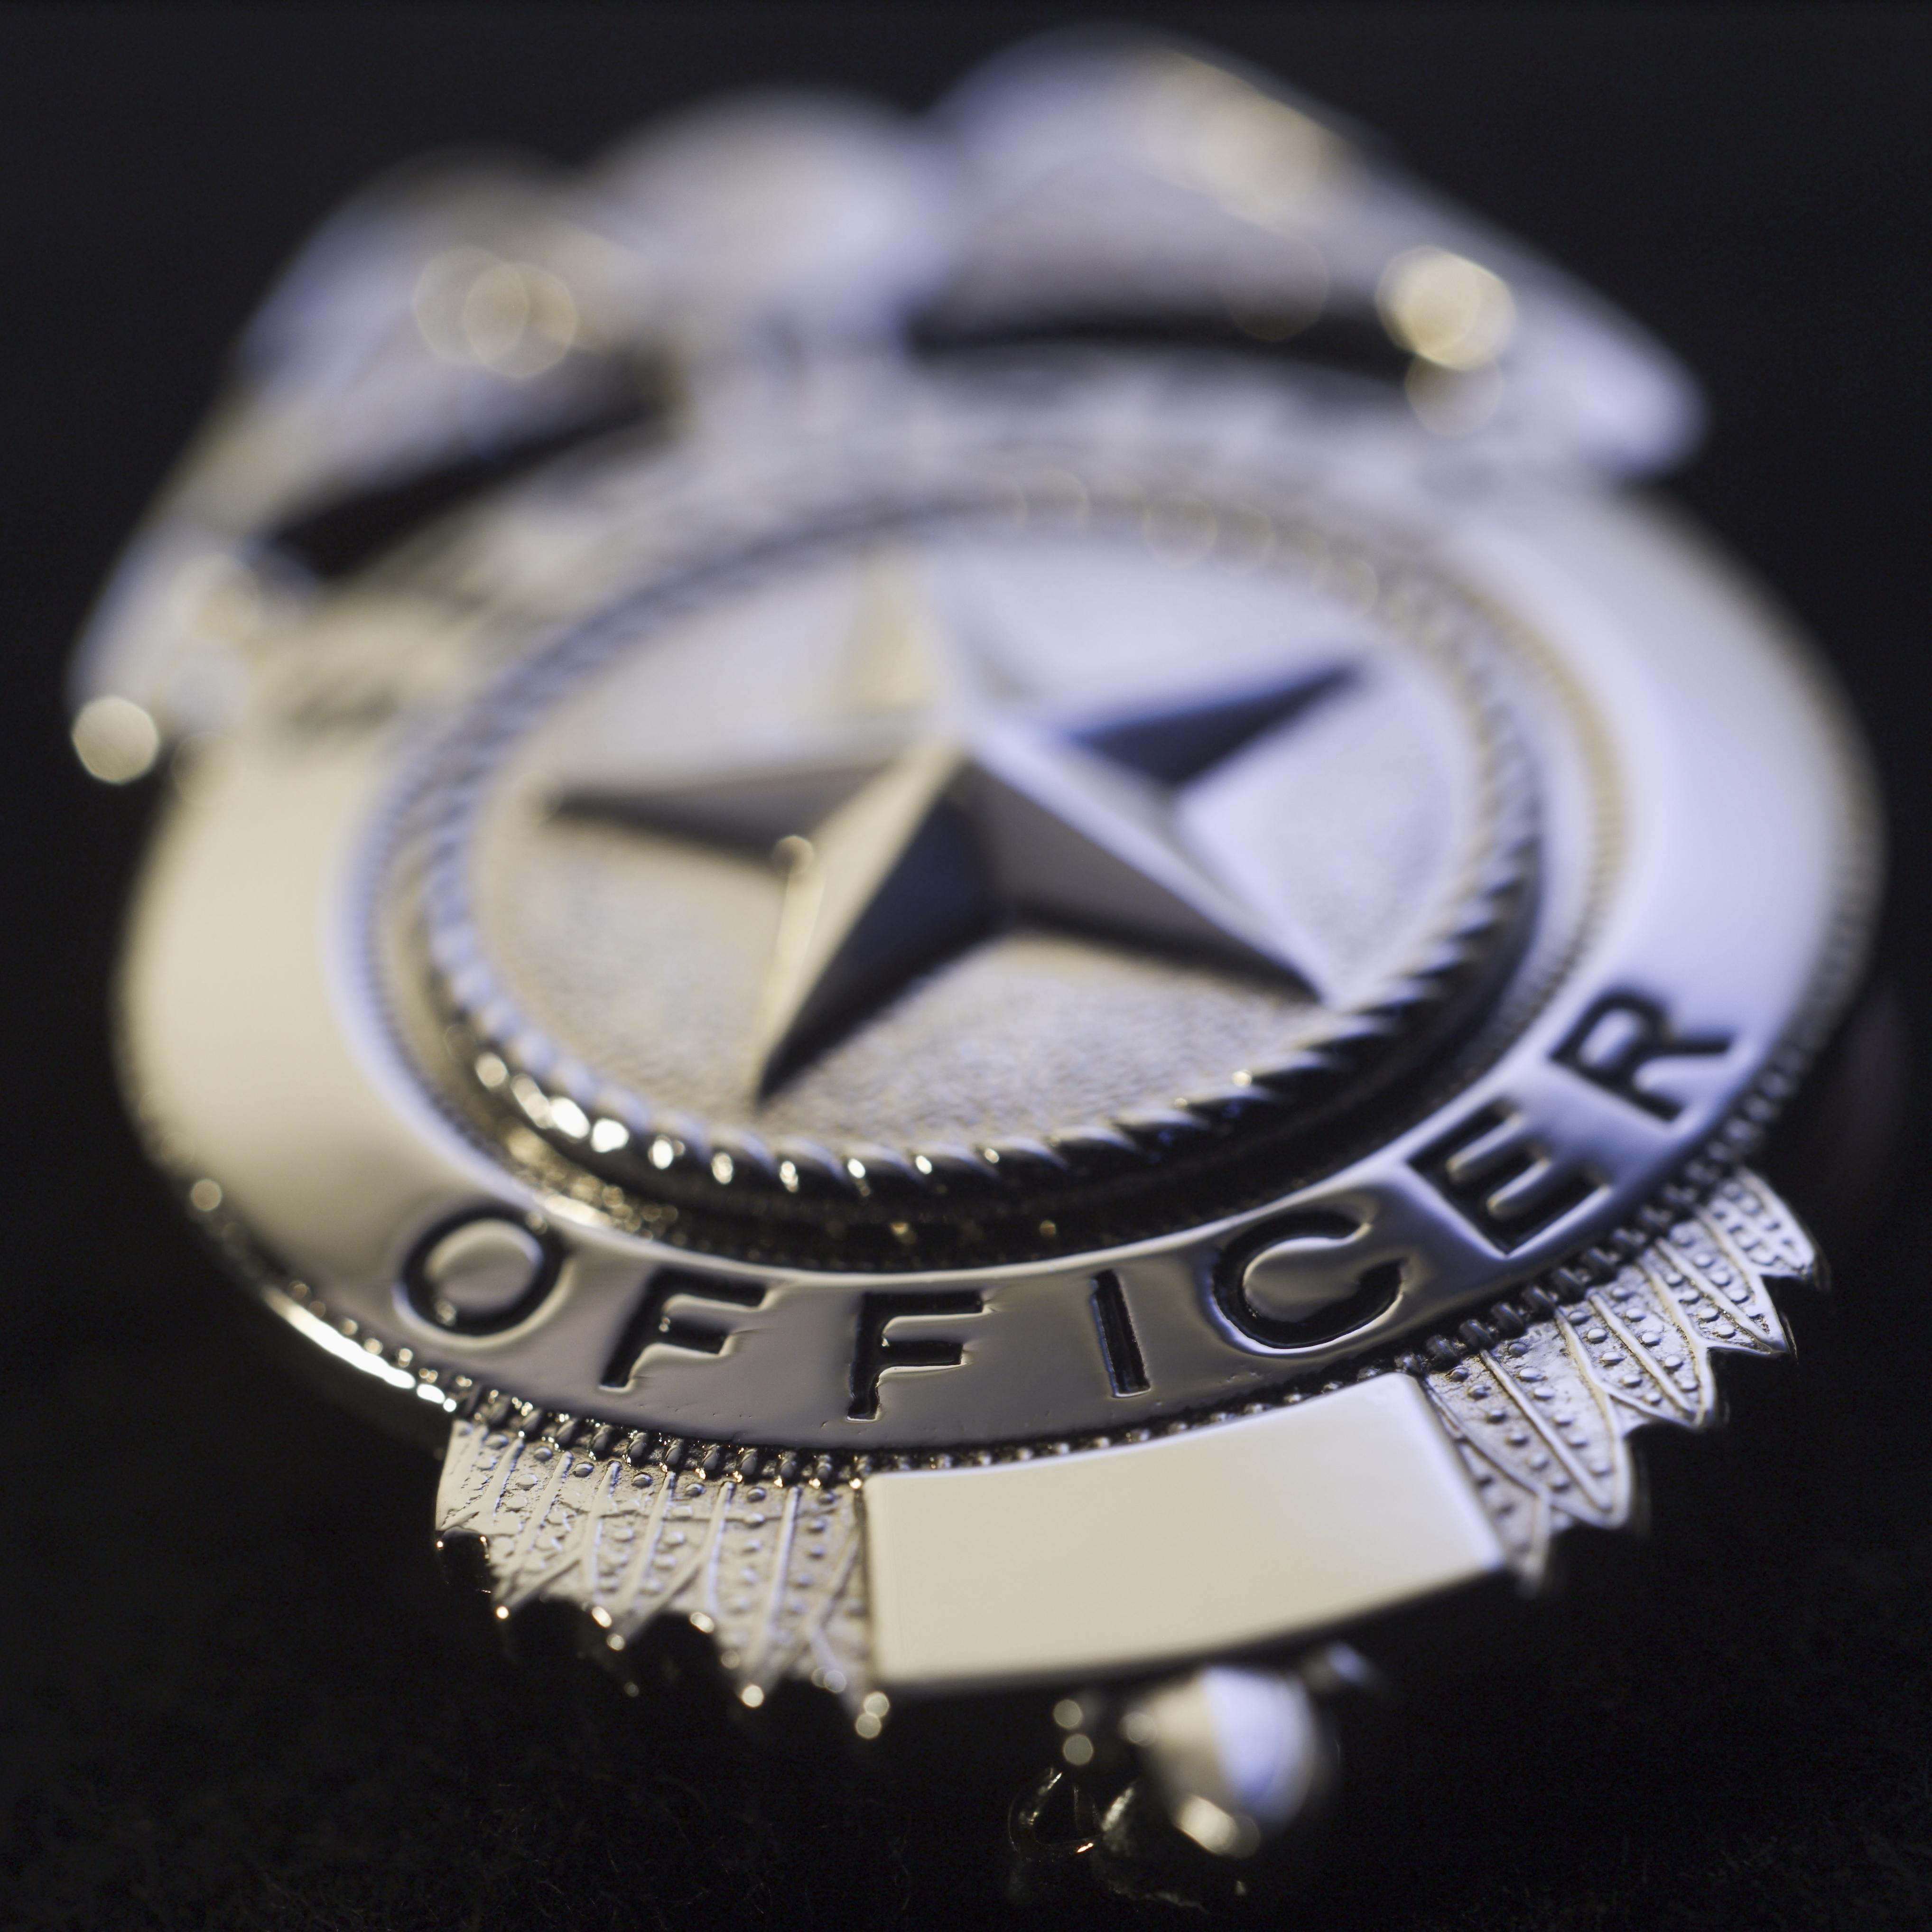 Police badge, close-up